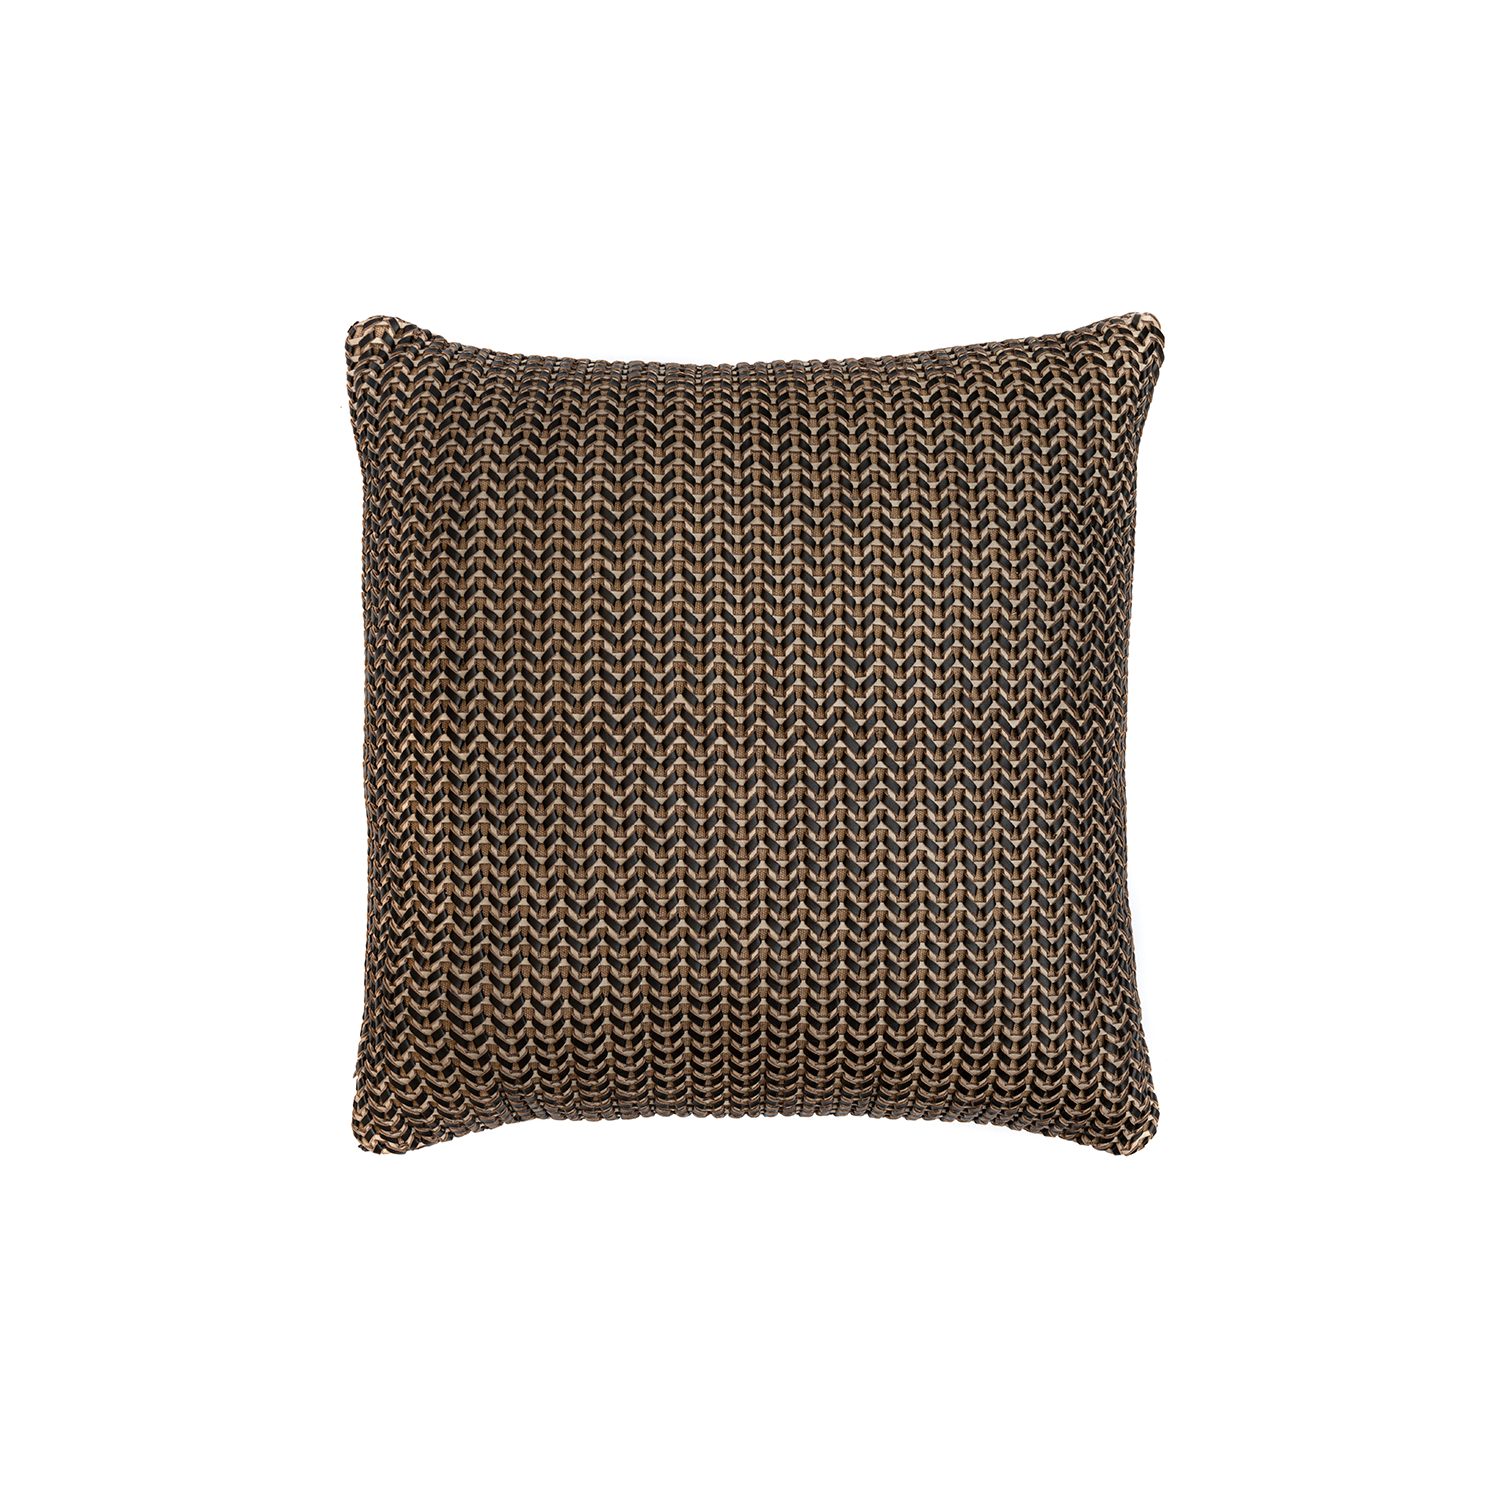 Lanca Bicolor Woven Leather Cushion Square - The Lanca Bicolor Woven Leather Cushion is designed to complement an ambient with a natural and sophisticated feeling. This cushion style is available in pleated leather or pleated suede leather. Elisa Atheniense woven handmade leather cushions are specially manufactured in Brazil using an exclusive treated leather that brings the soft feel touch to every single piece.   The front panel is handwoven in leather and the back panel is 100% Pes, made in Brazil.  The inner cushion is available in Hollow Fibre and European Duck Feathers, made in the UK.  Lanca Bicolor Woven Leather Cushion is available in multiple colours of leather. Please enquire for colour combination, see colour chart for reference.   | Matter of Stuff